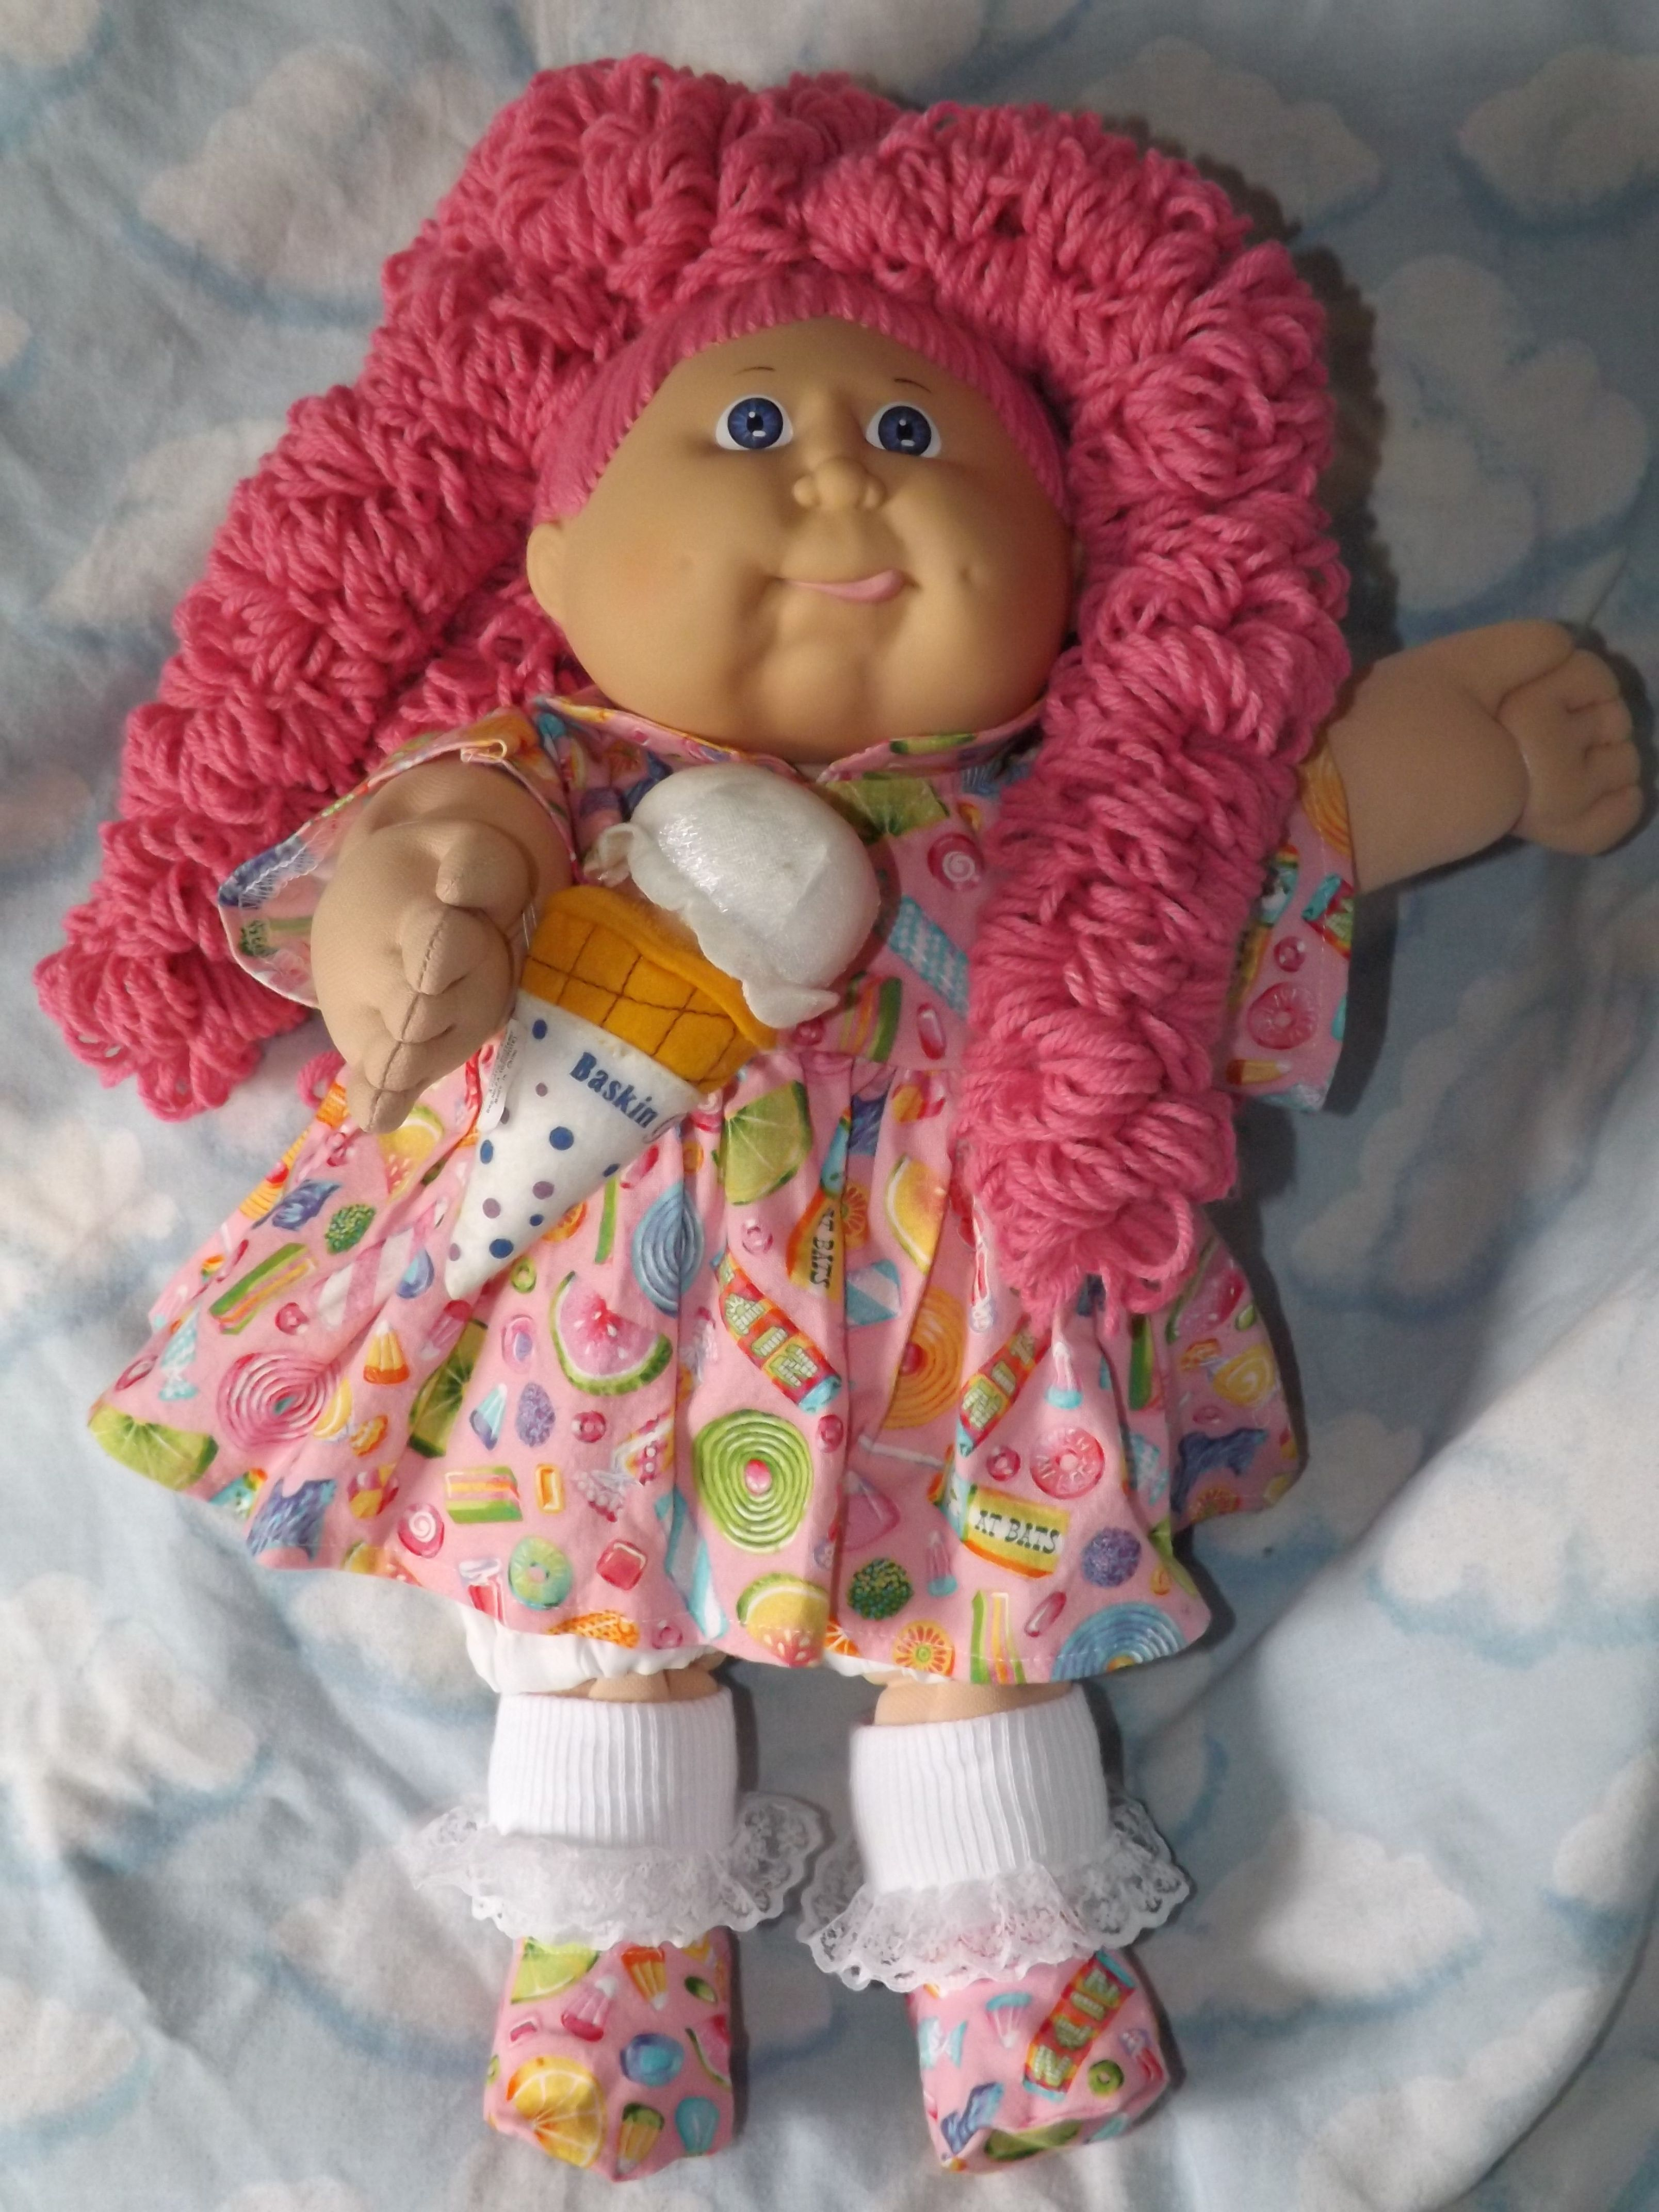 Pin By Suzie Sunshine Dalbeck On Cabbage Patch Kids Reroot Cabbage Patch Dolls Vintage Cabbage Patch Dolls Cabbage Patch Kids Dolls